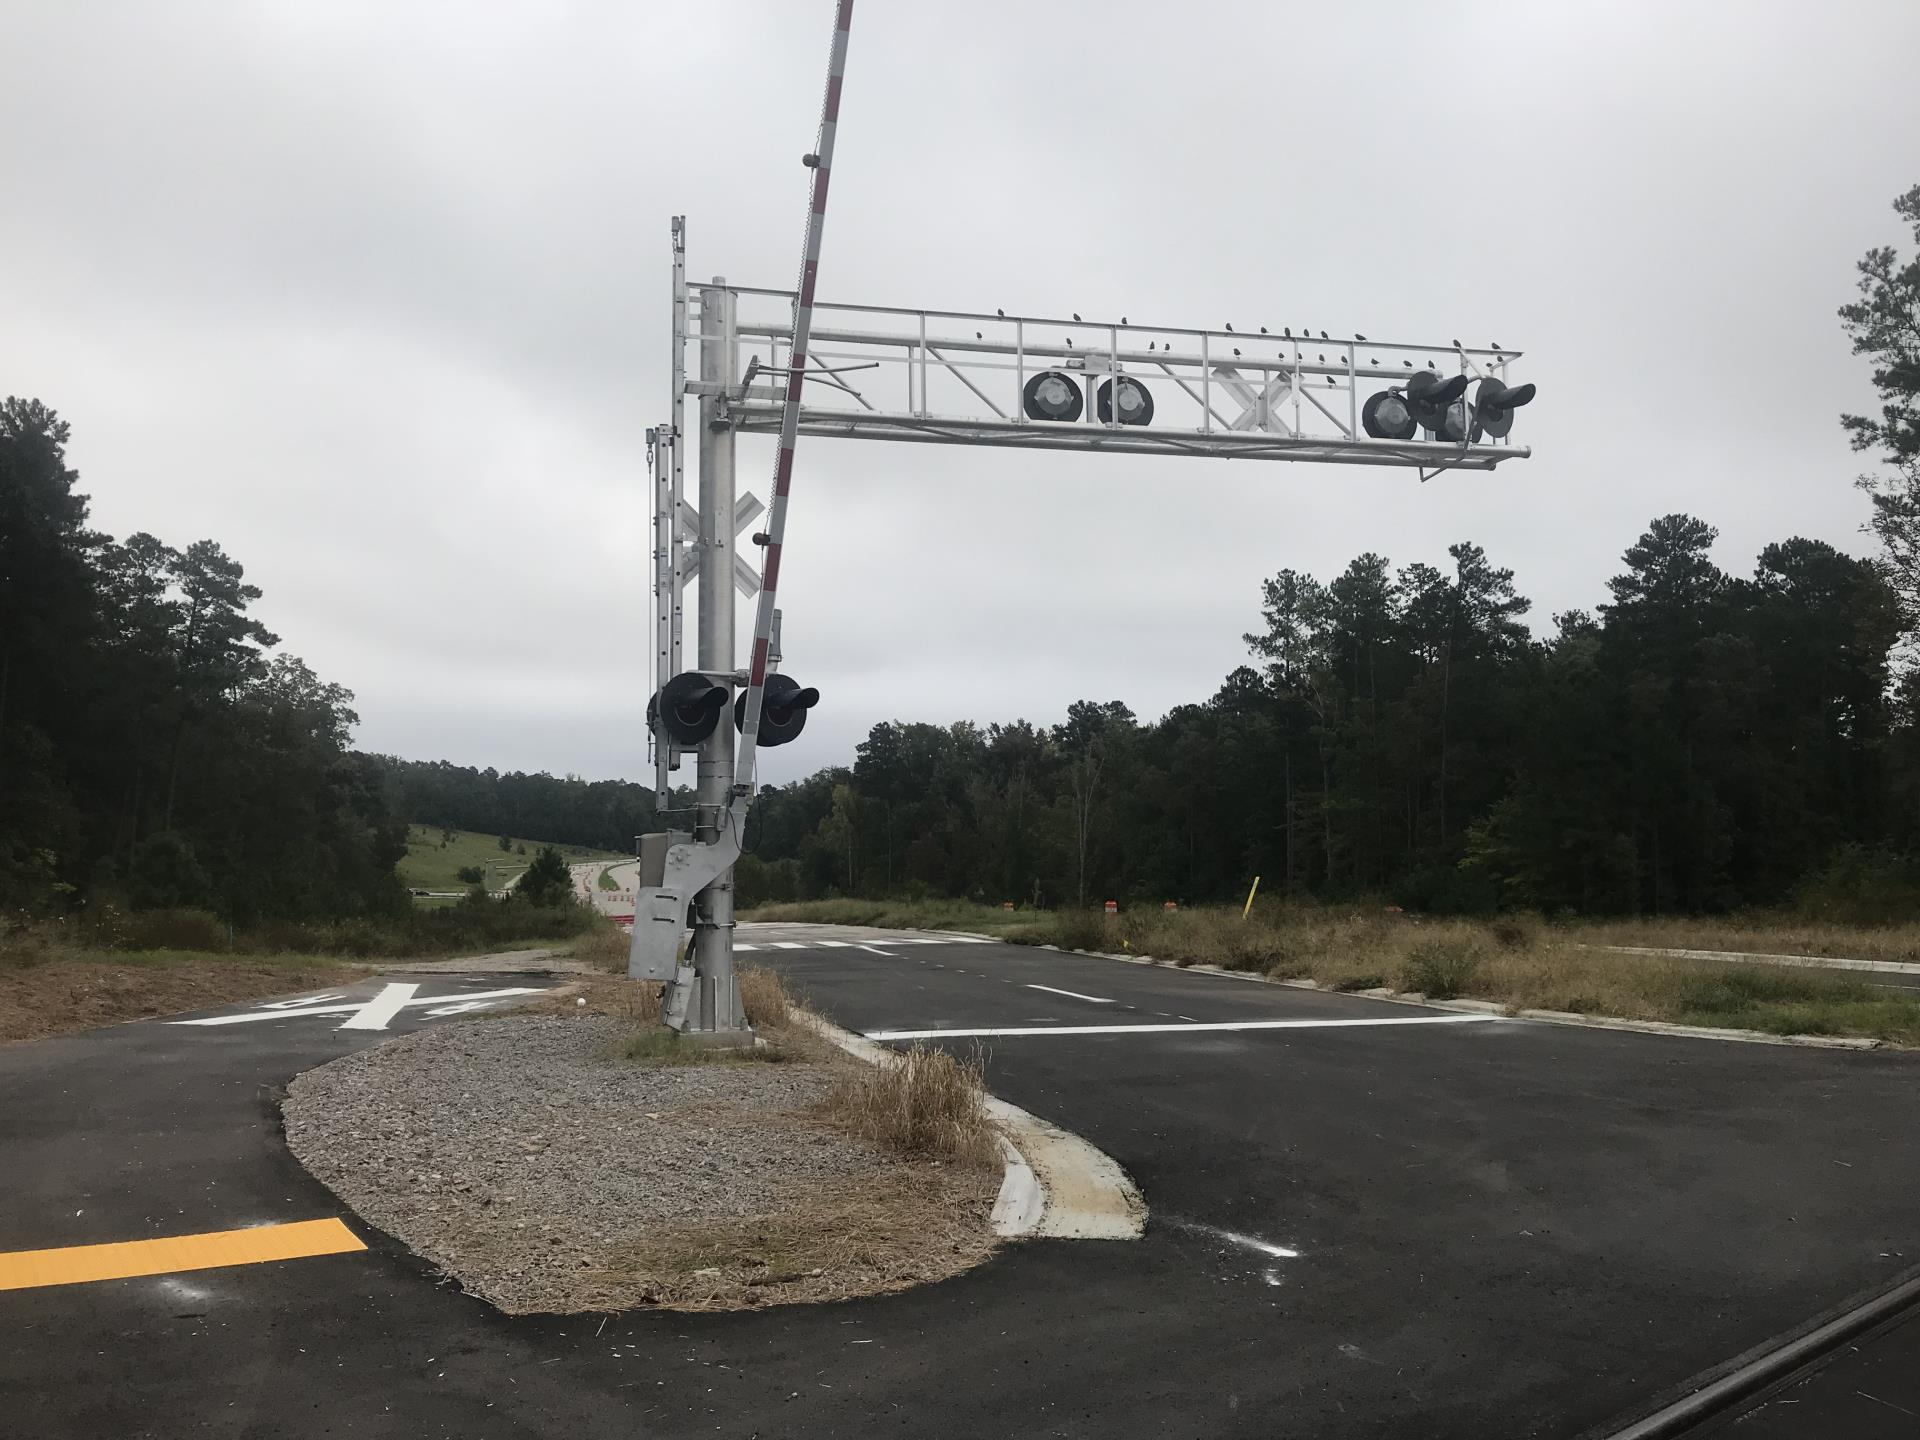 Western Cary Railroad Crossings | Town of Cary